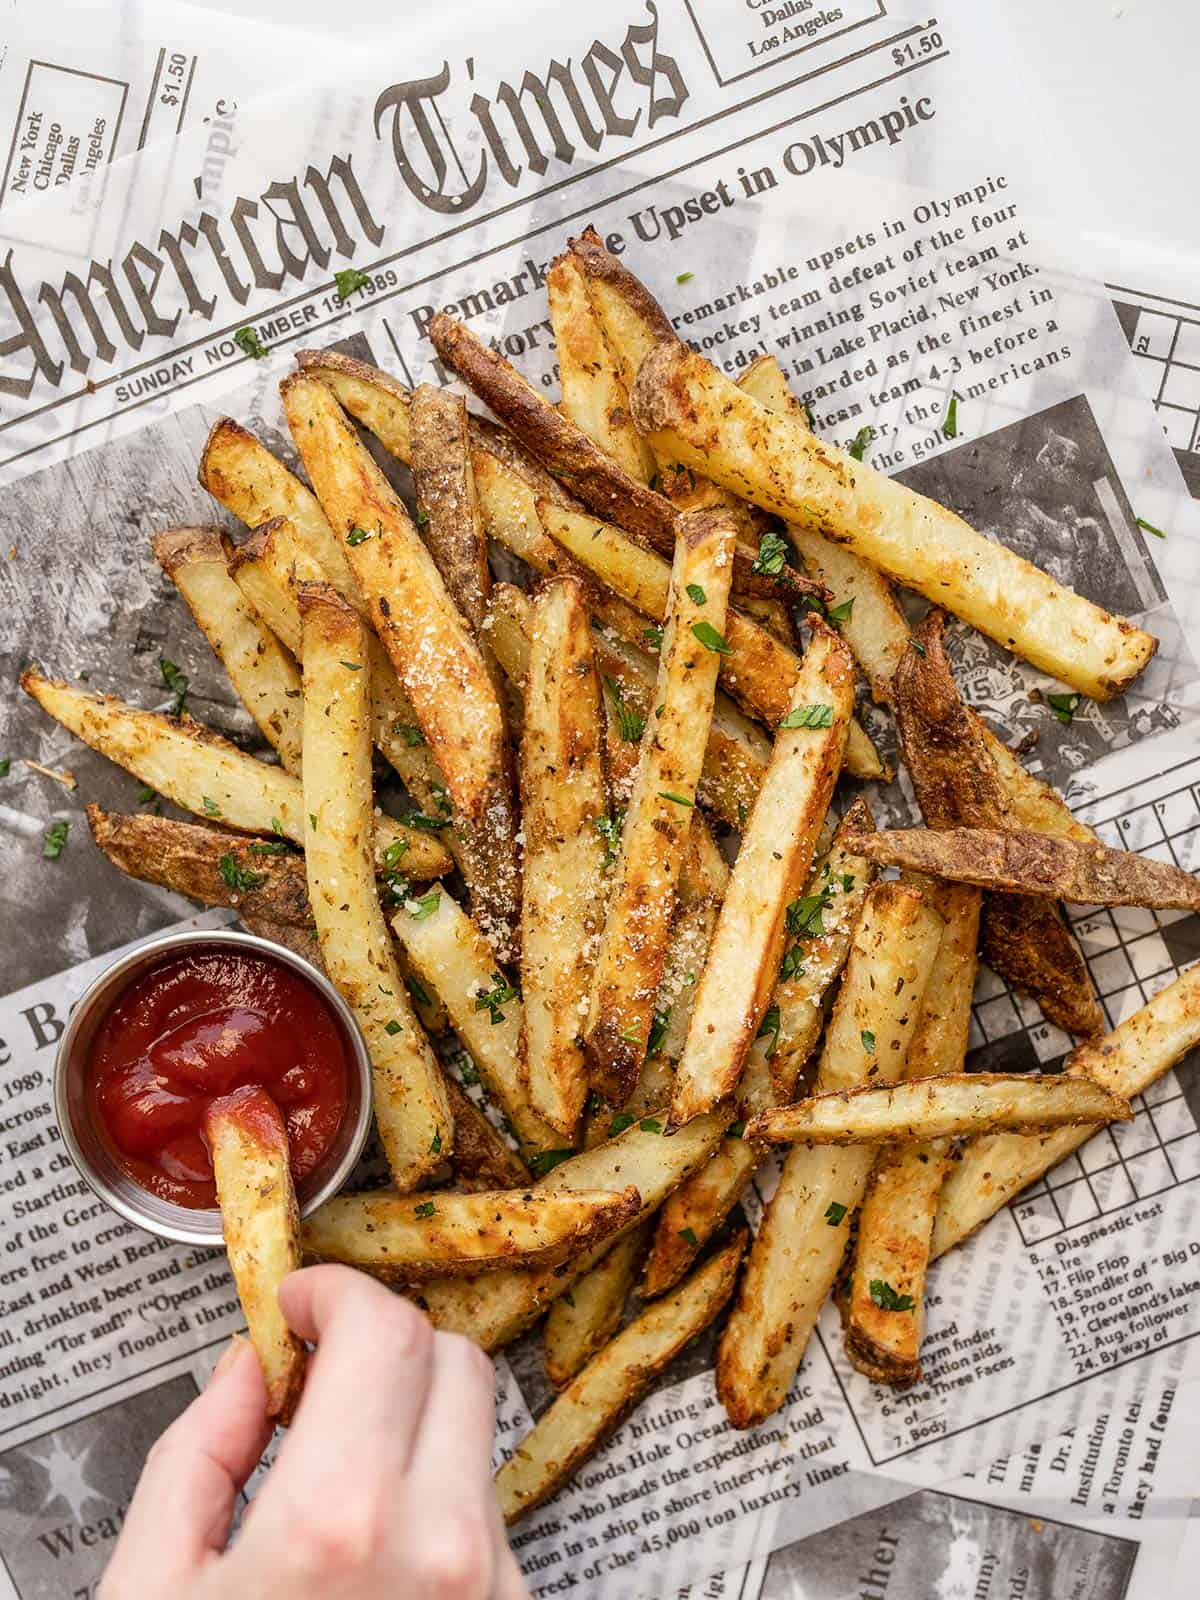 a hand dipping one garlic parmesan fry into ketchup next to a pile of fries